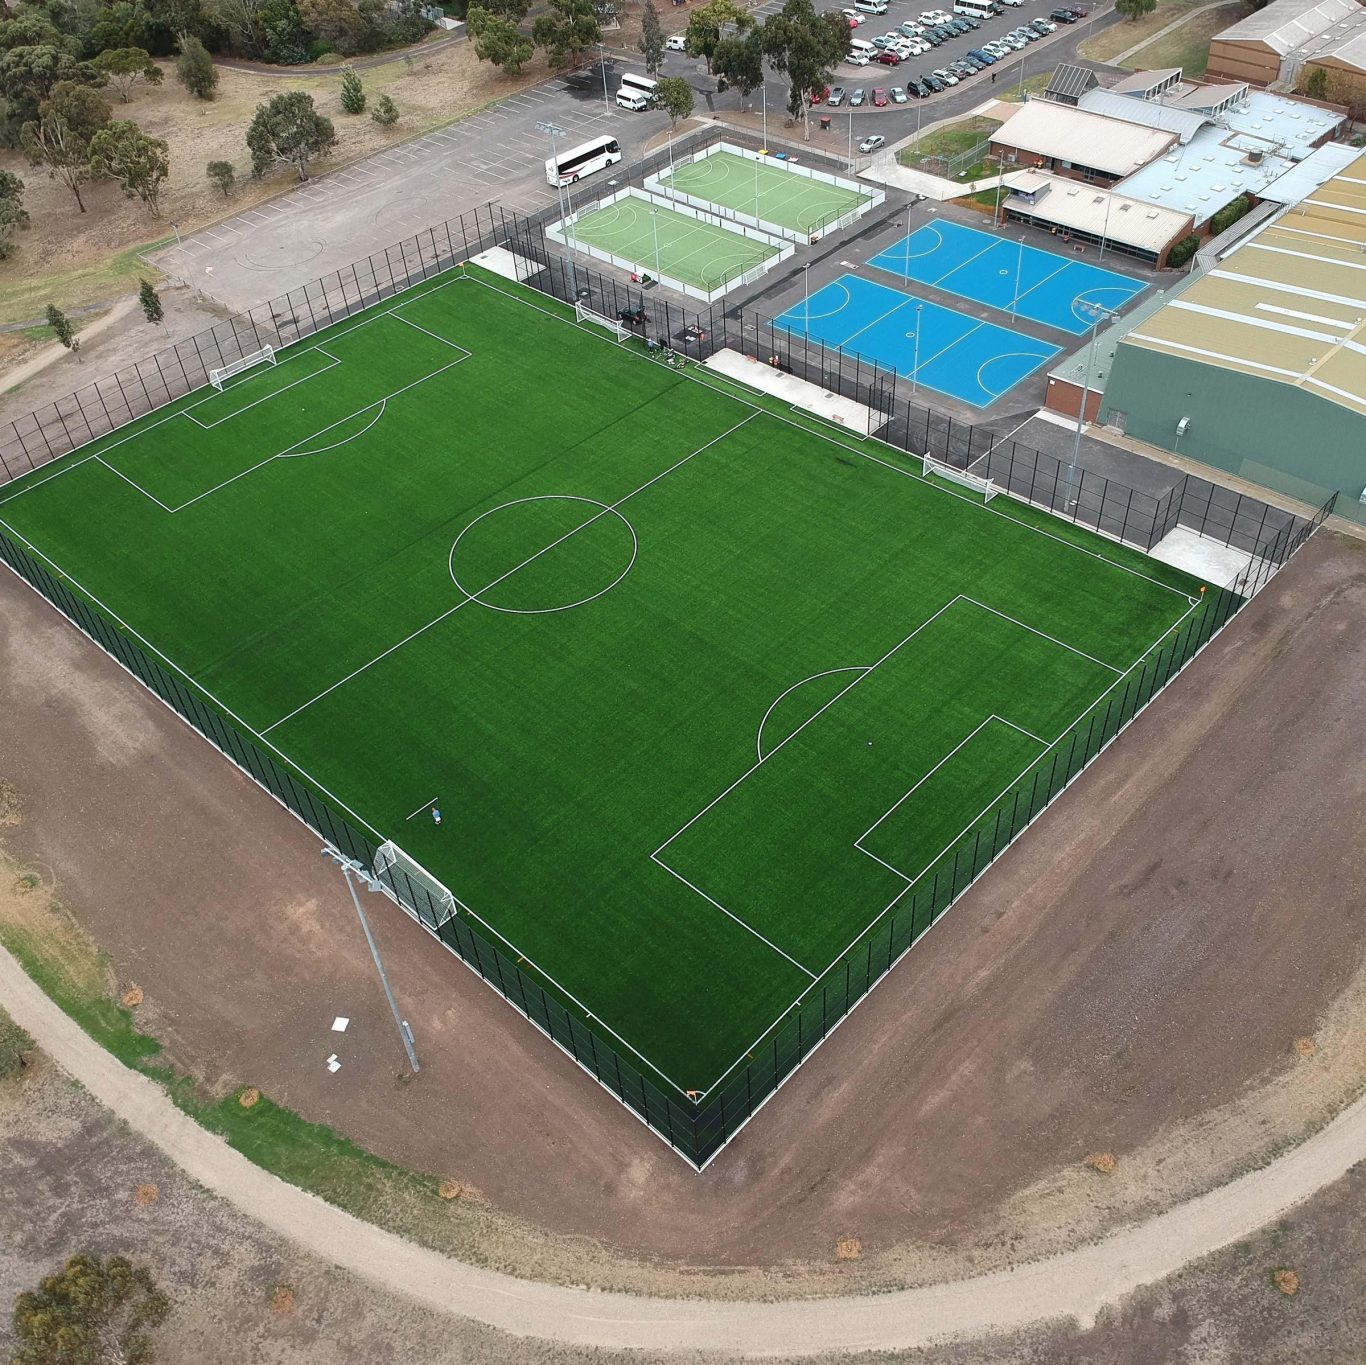 City of Greater Geelong - Geelong Leisure Time Synthetic Soccer Pitch